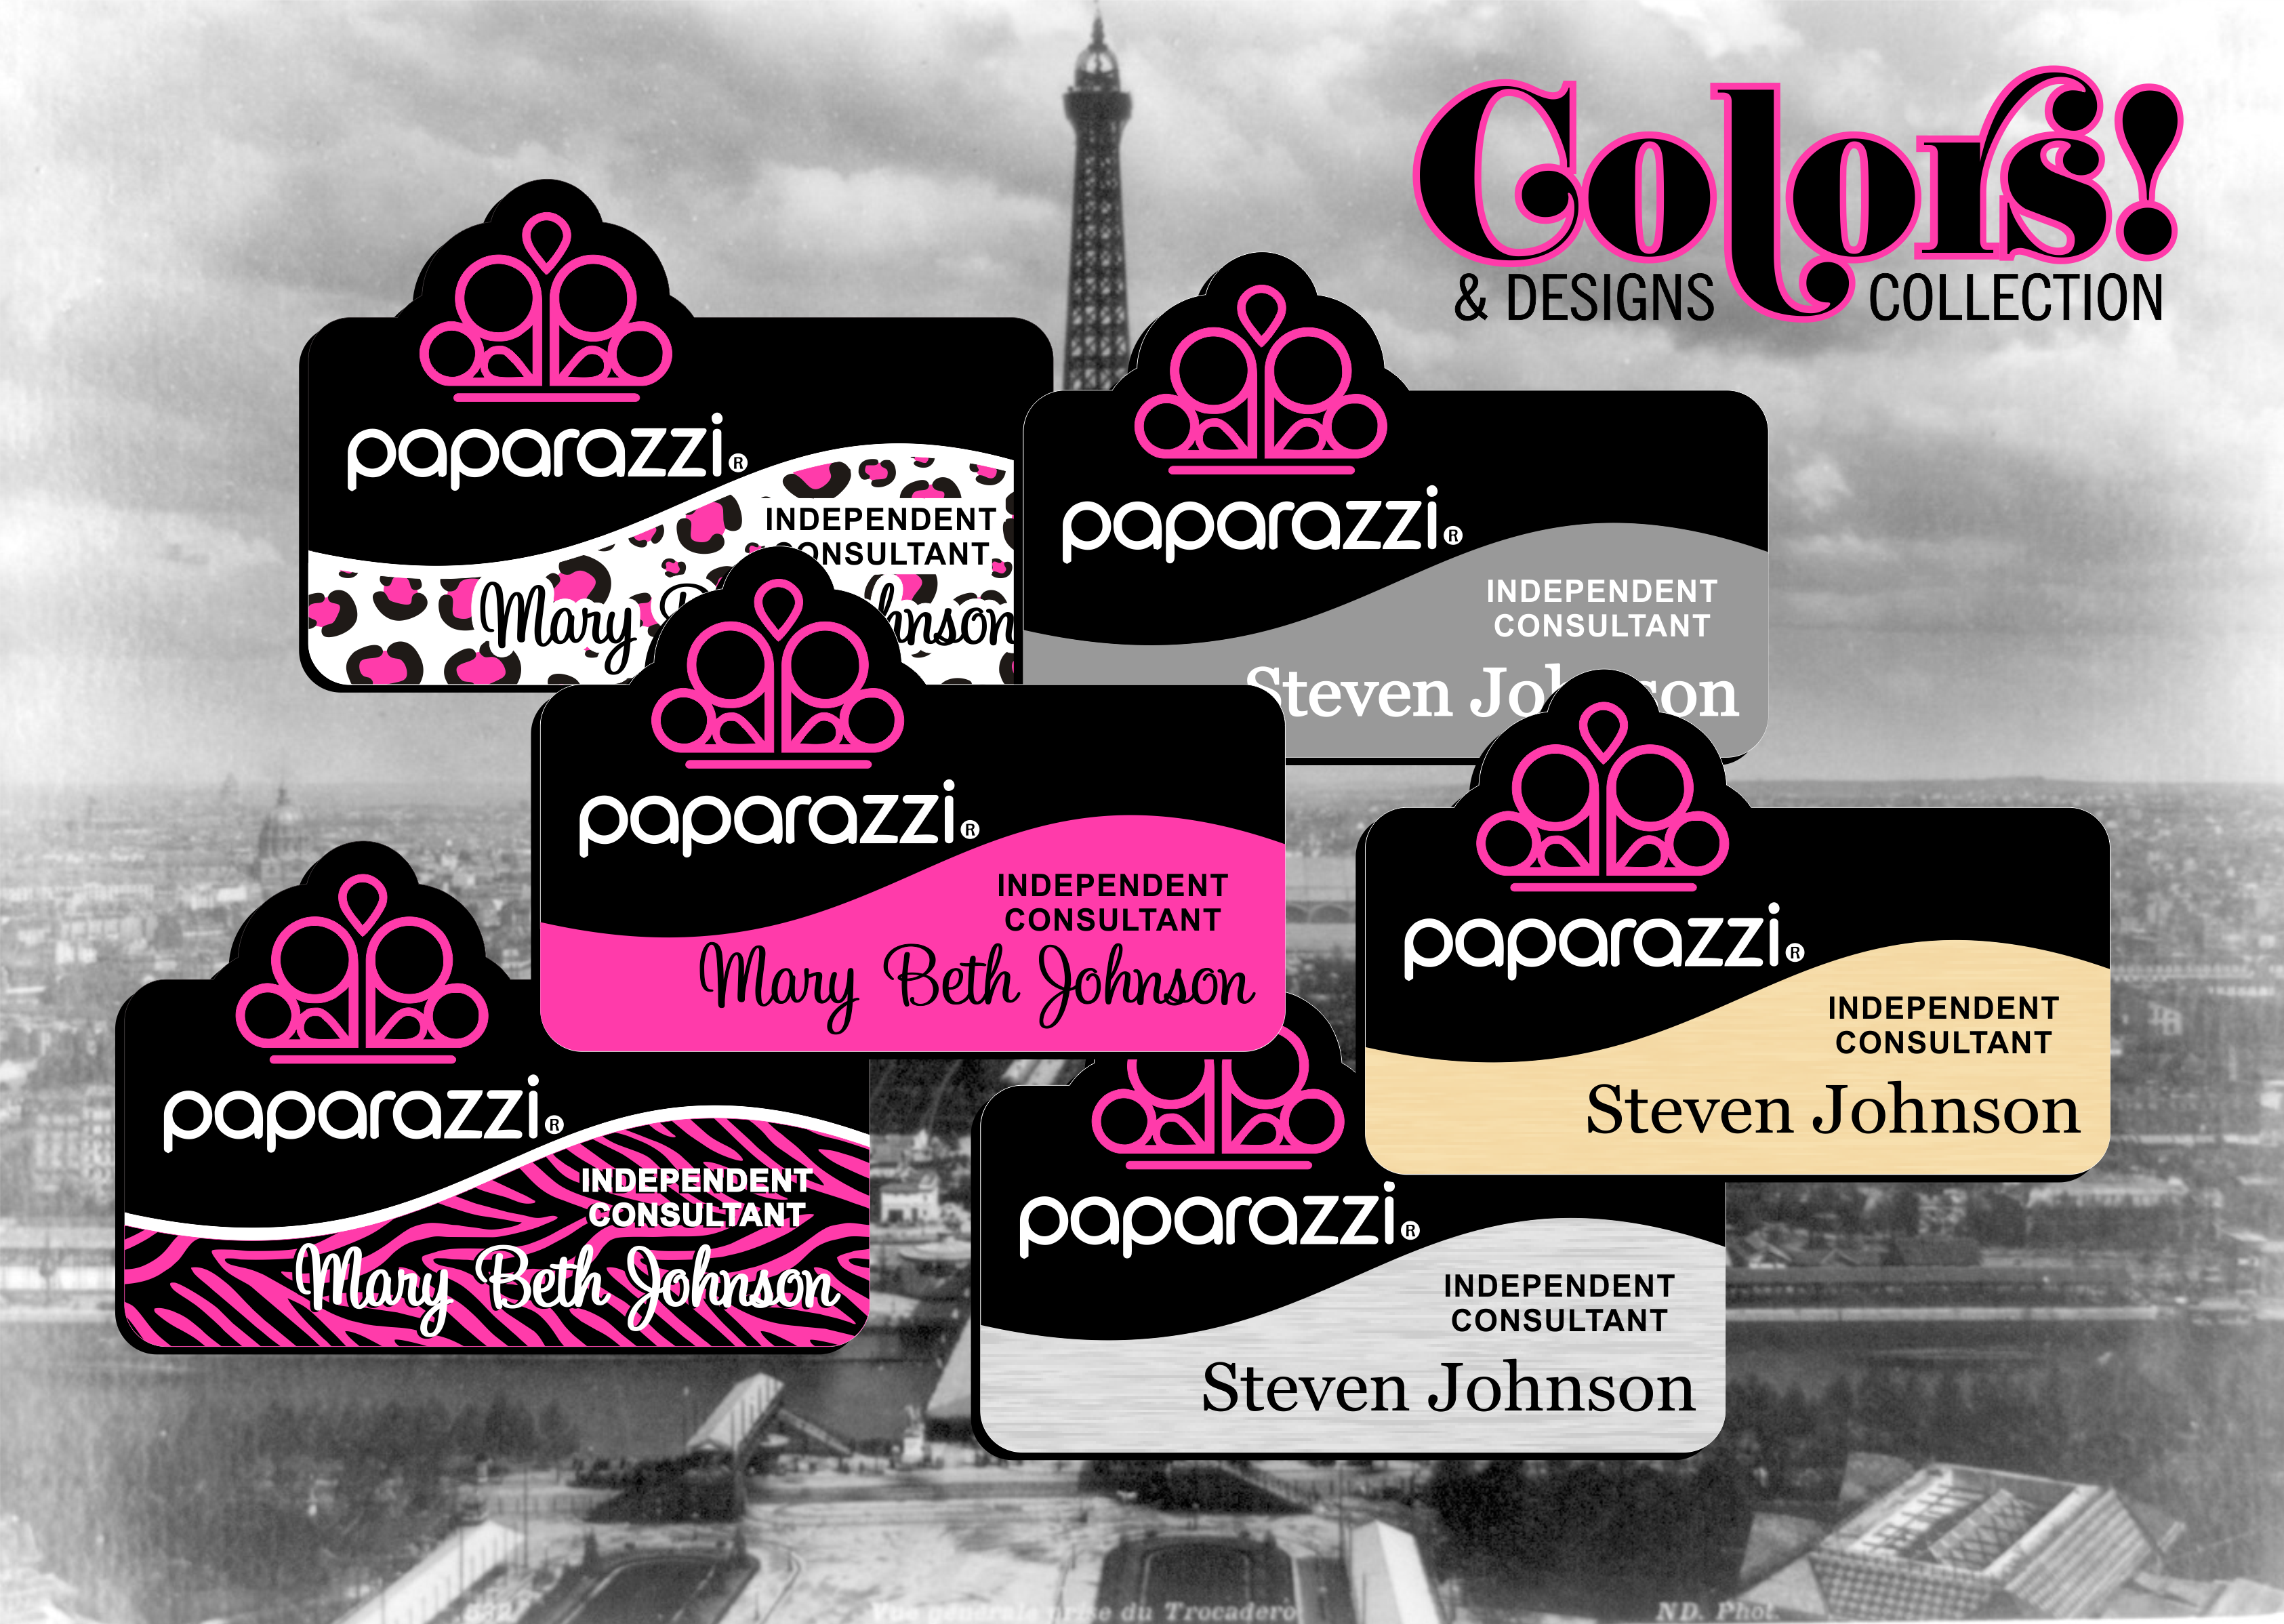 Paparazzi Name Badges - Colors & Designs Collection